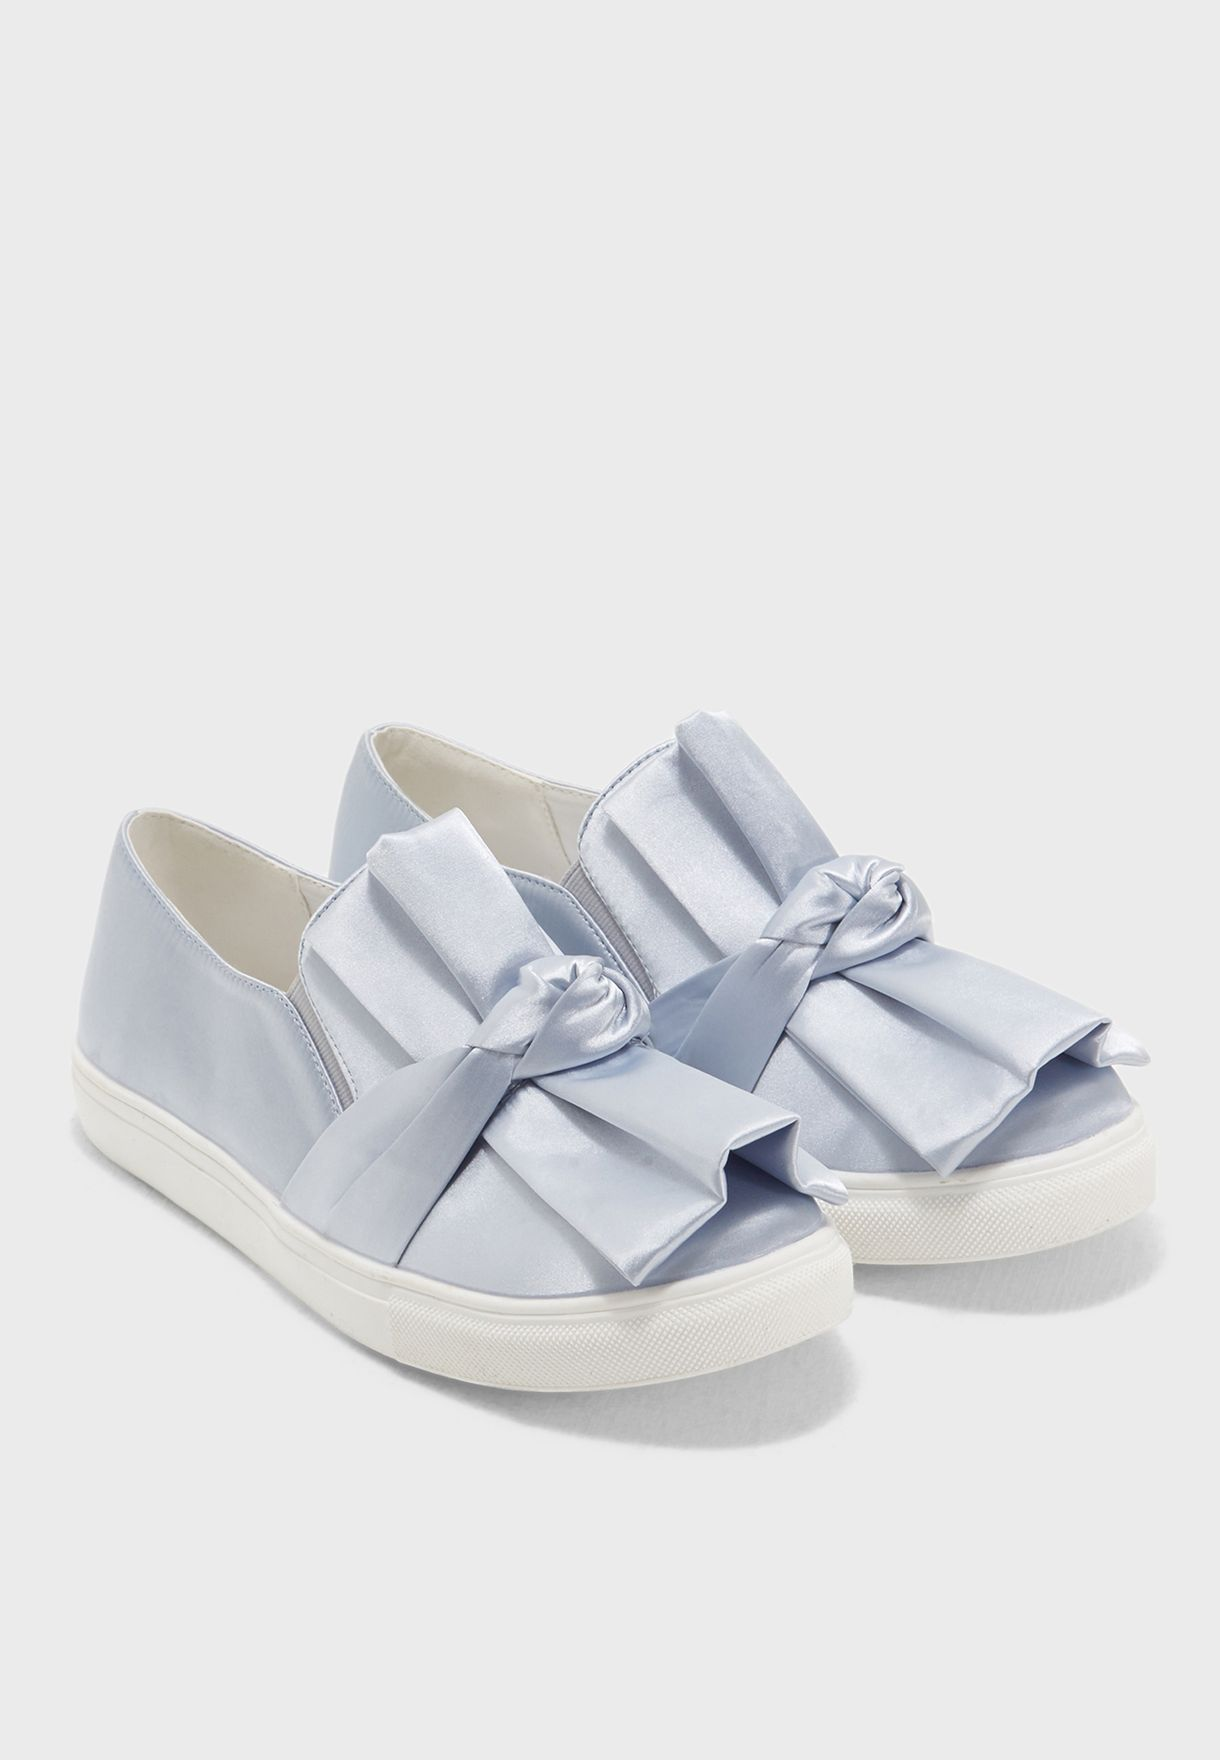 SAPHRE Knotted Bow Slip On